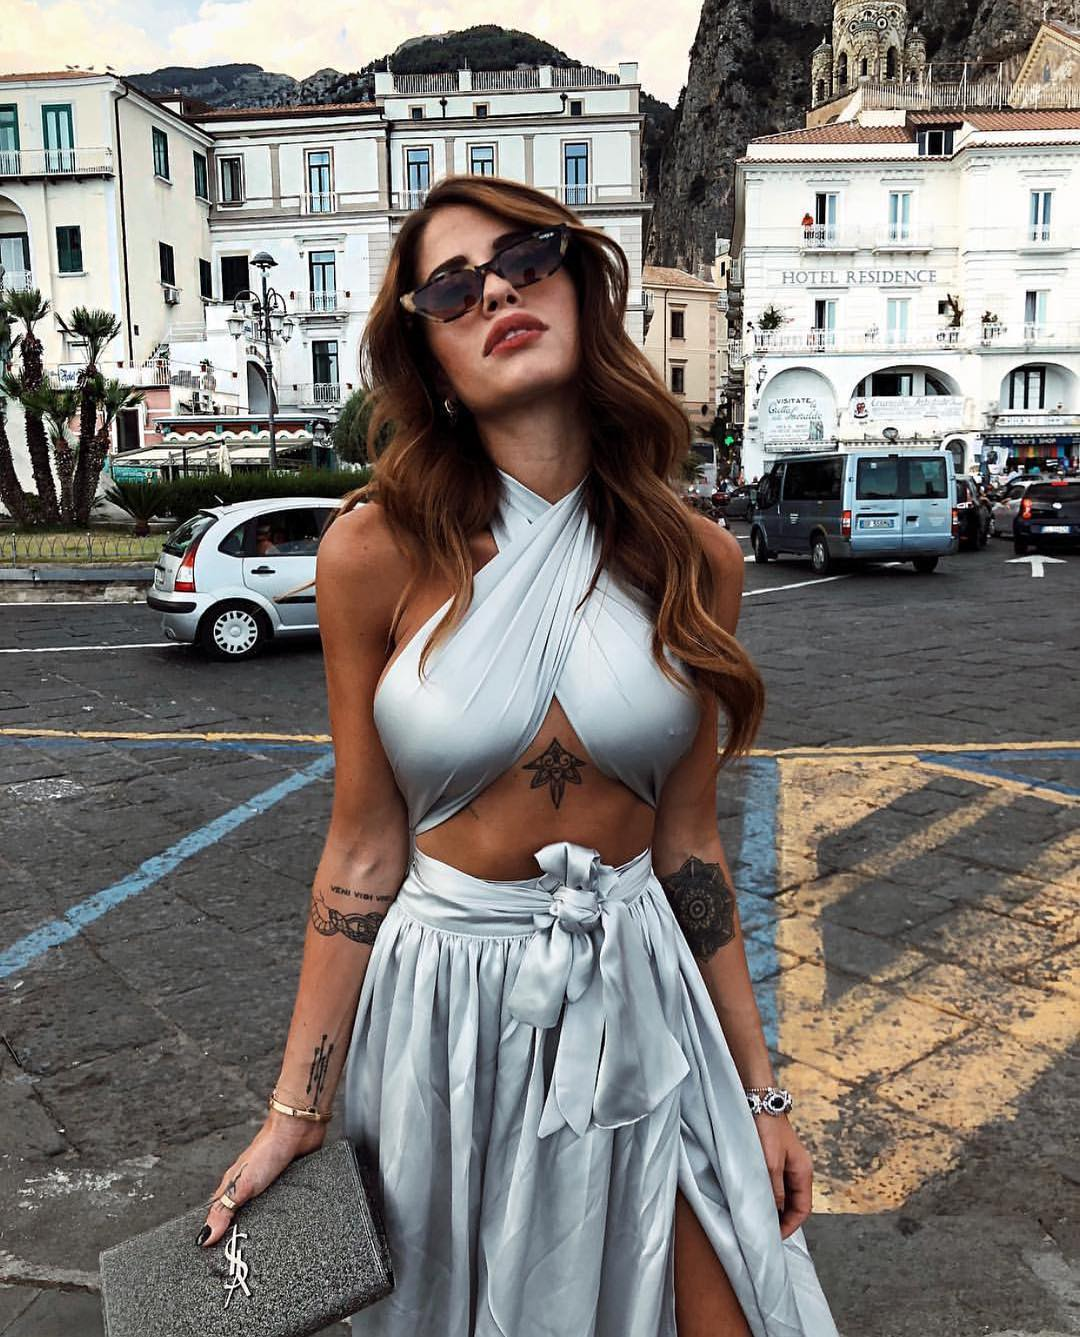 Metallic Pastel Blue Two Piece Dress For Summer Parties 2019